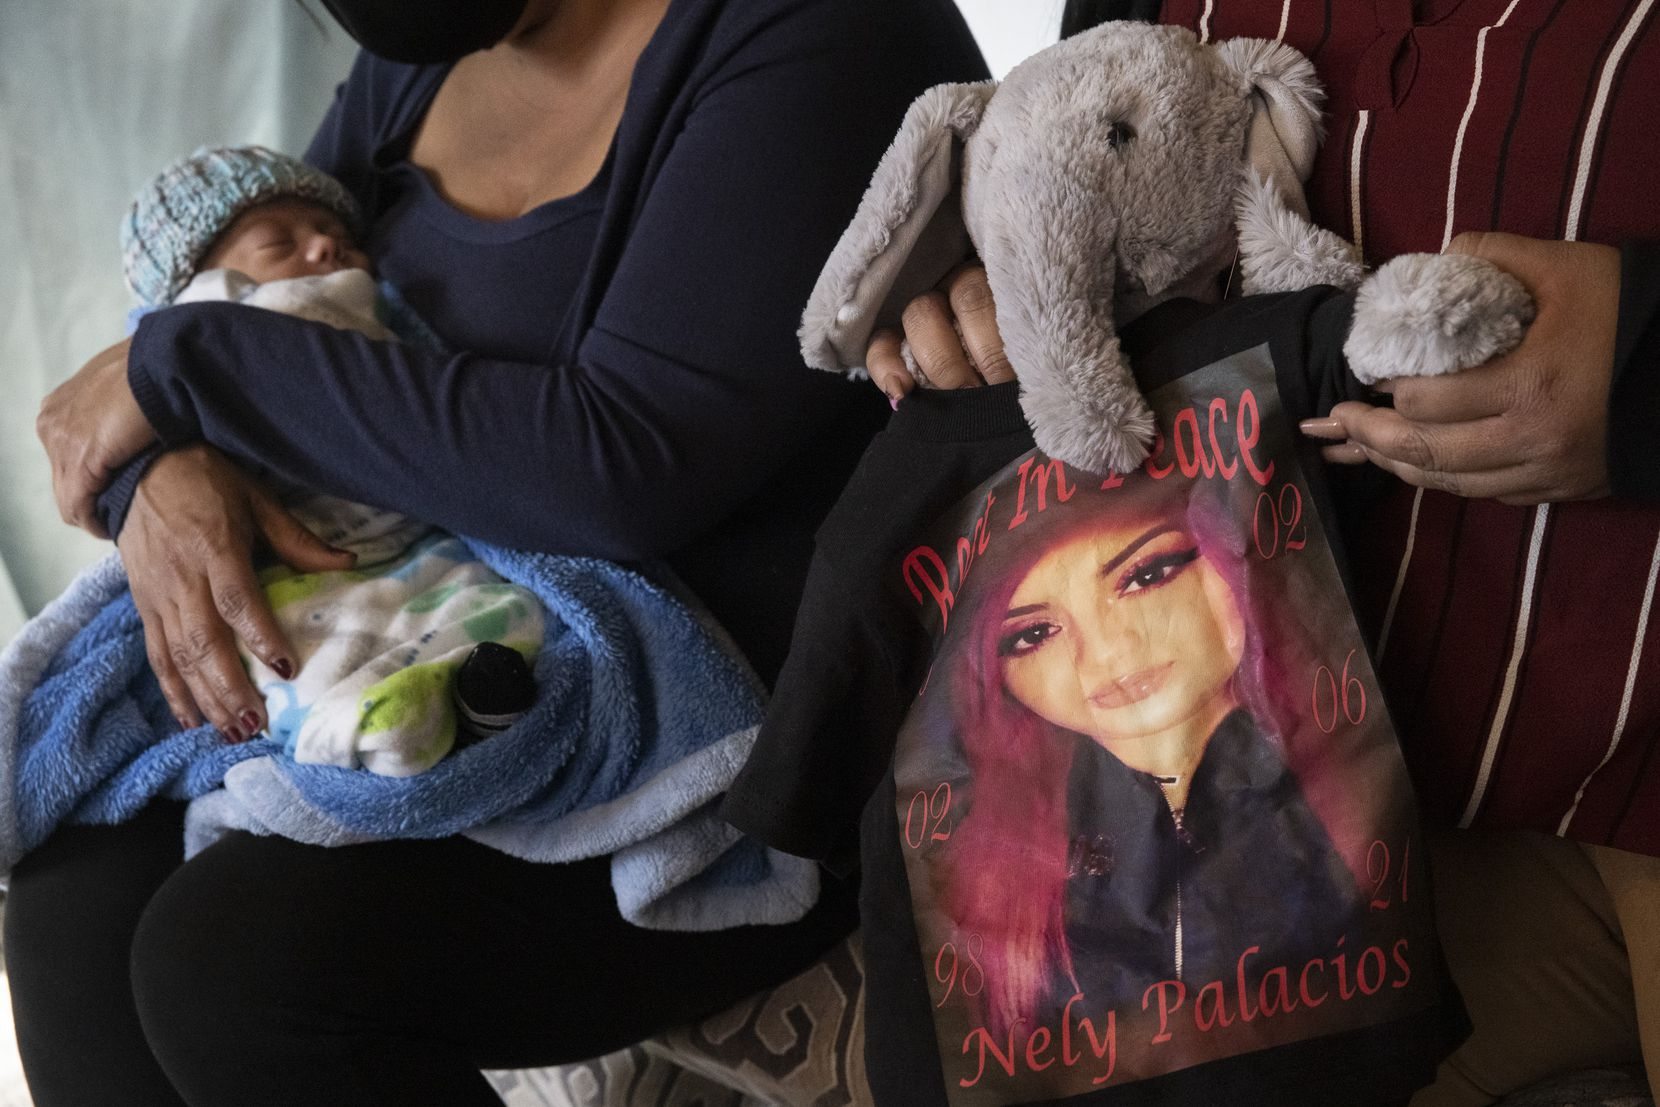 Lucy Palacios holds a stuffed elephant clad in a small version of the T-shirts created to honor her sister, Nely. At Lucy's side is Miriam with Isaiah. The stuffed elephant, given to the family by the Parkland NICU, contains a toy heart that plays a recording of Nely's own heartbeat.